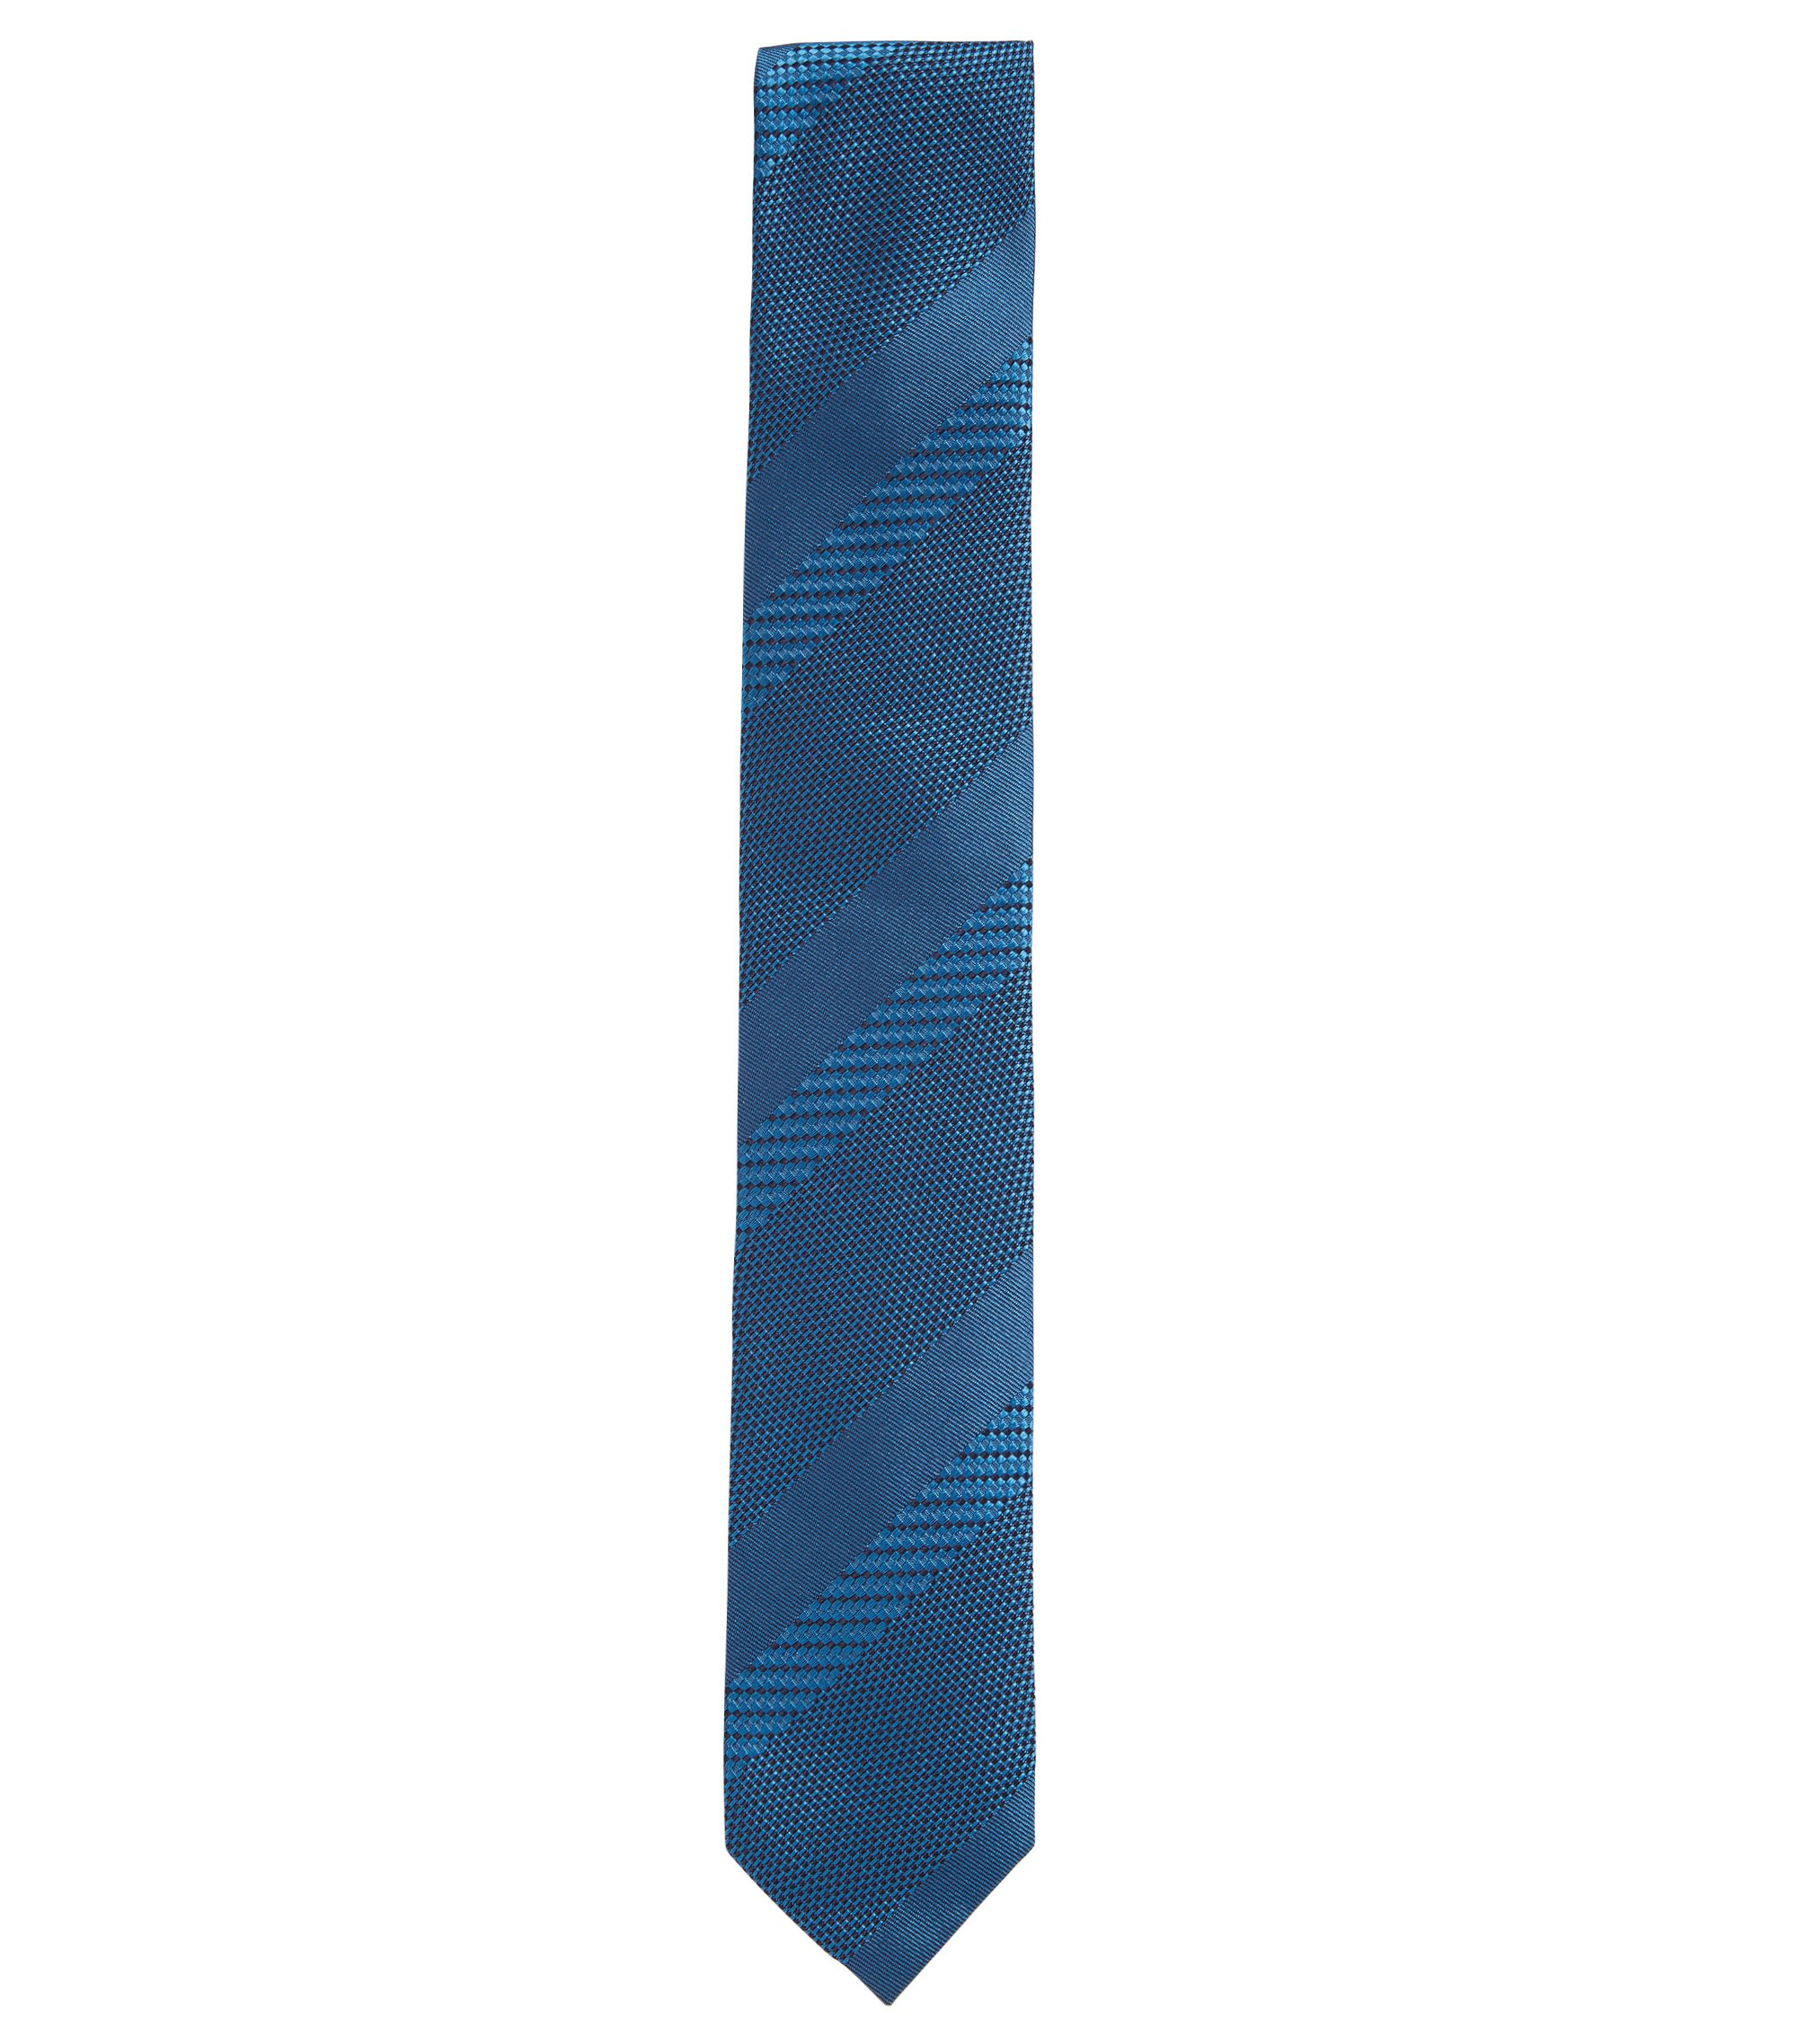 Silk jacquard tie with textured stripes, Turquoise